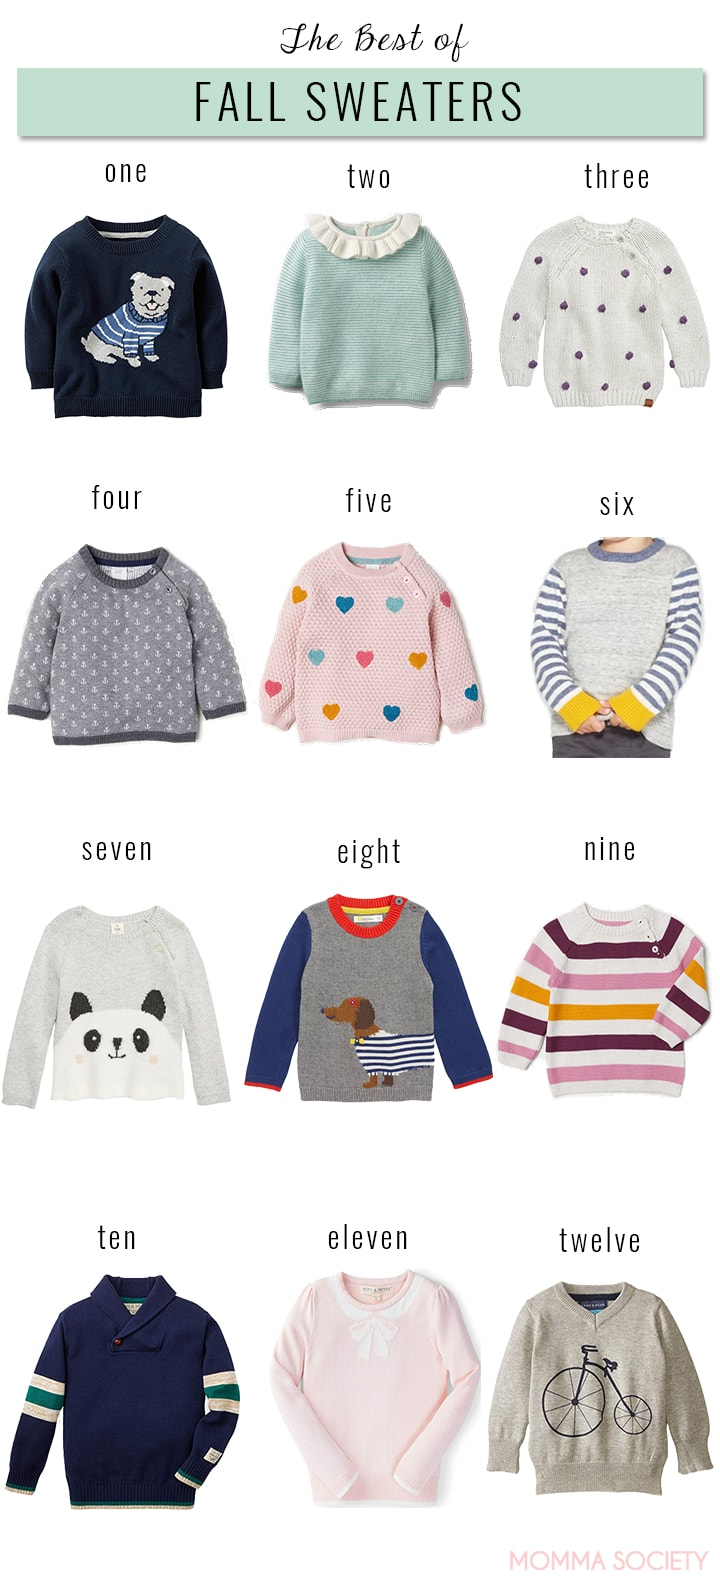 Best of Fall Sweaters for Babies and Toddlers | Momma Society